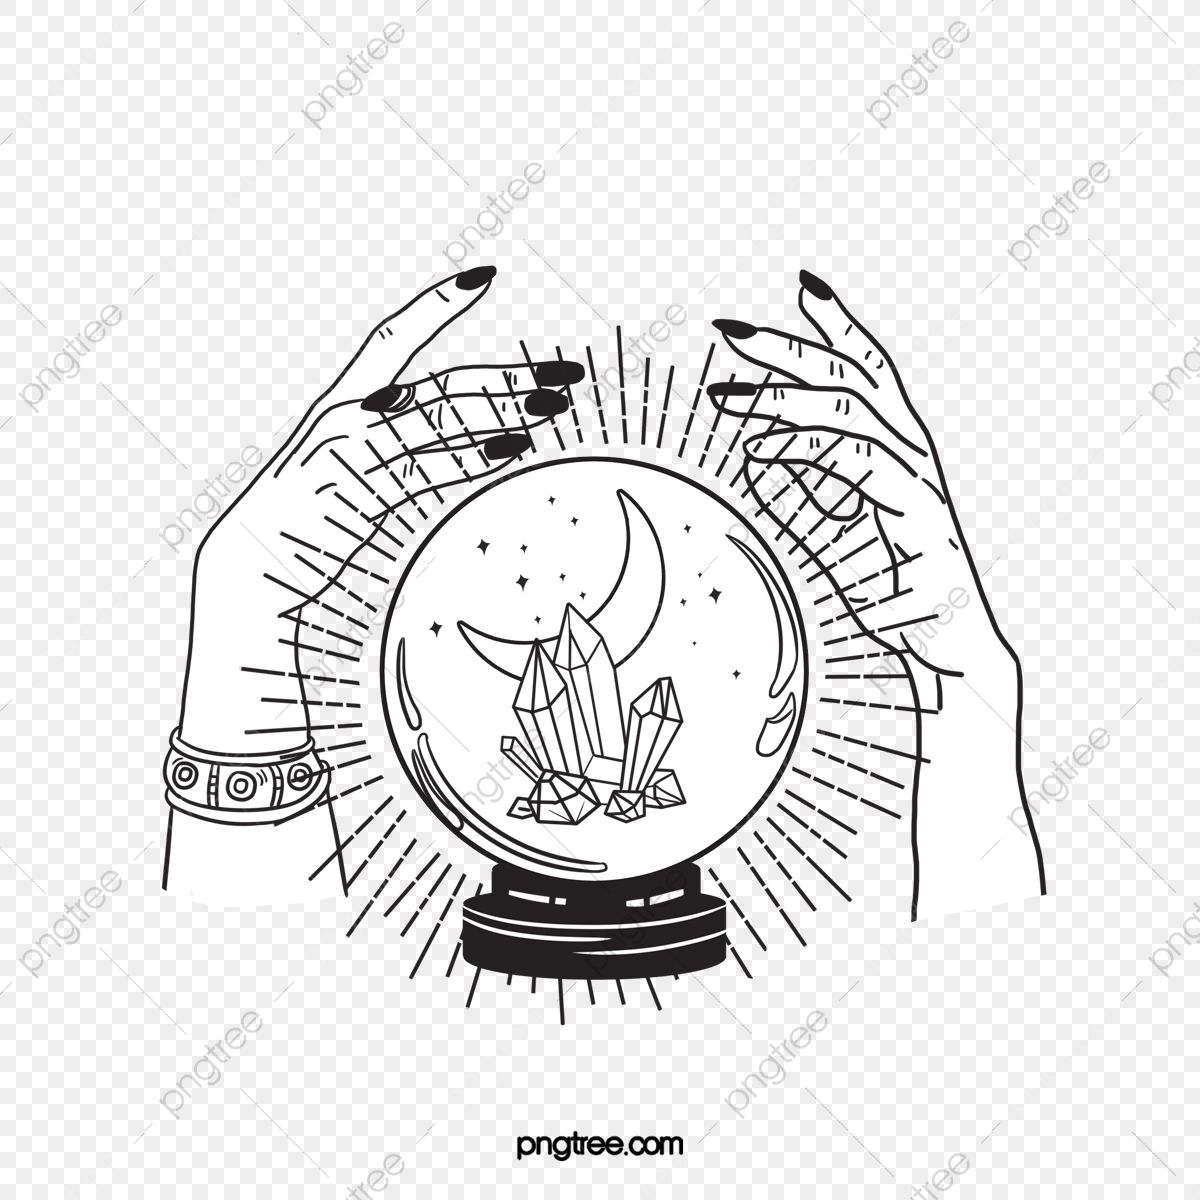 Hand Drawn Magic Crystal Ball Hand Clipart Hand Crystal Ball Png Transparent Clipart Image And Psd File For Free Download How To Draw Hands Crystal Ball Crystal Drawing